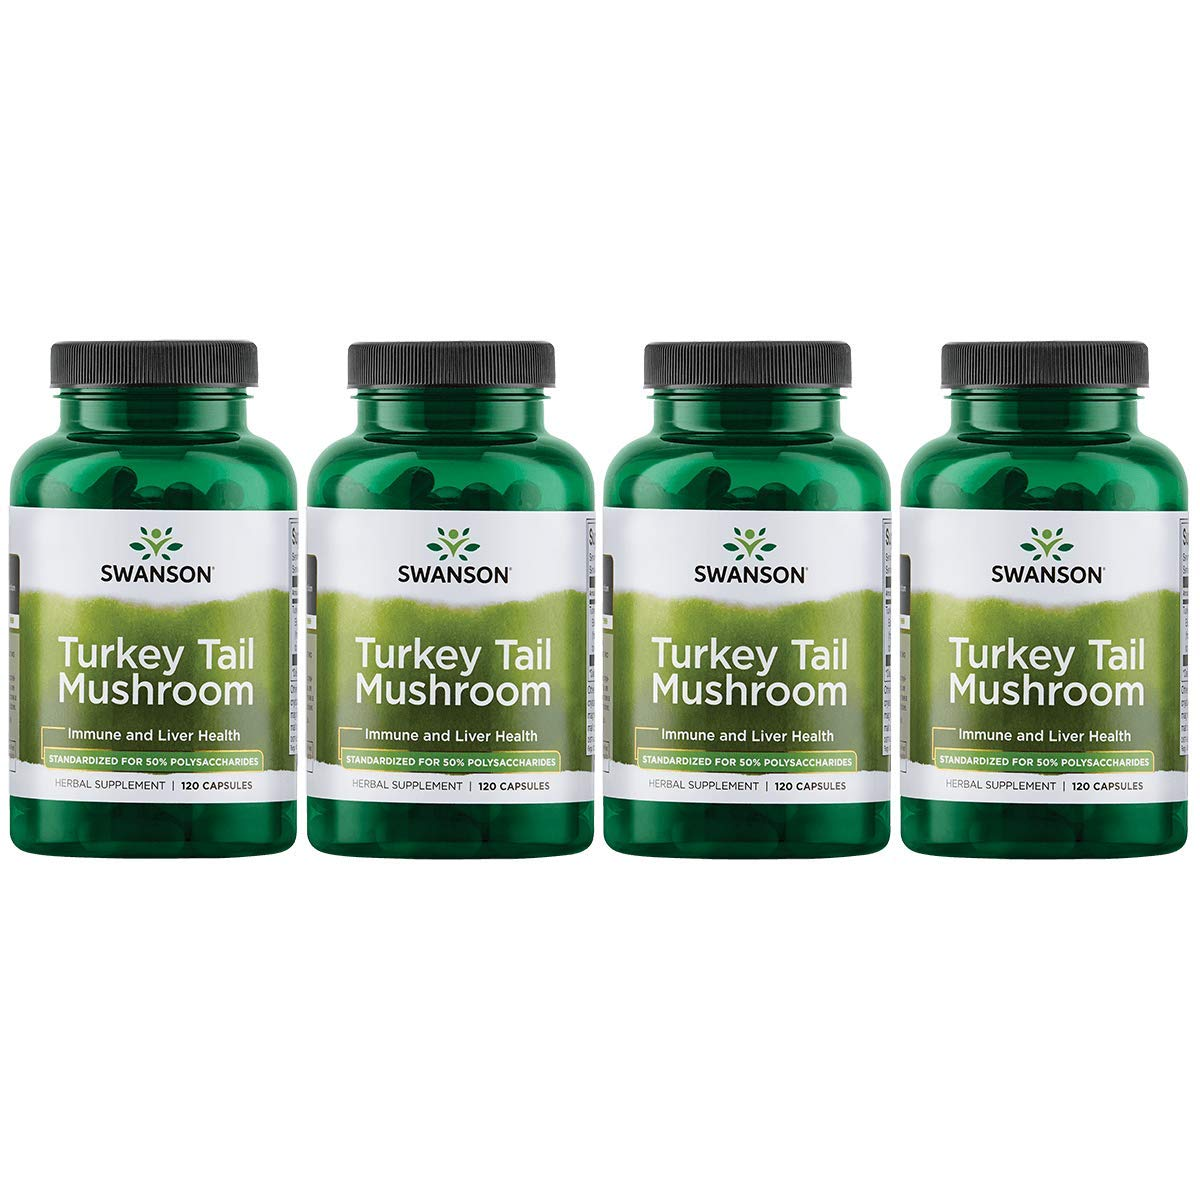 Swanson Turkey Tail Mushroom Supplements Immune Support Liver Support Cellular Health 500 mg 120 Capsules 4 Pack